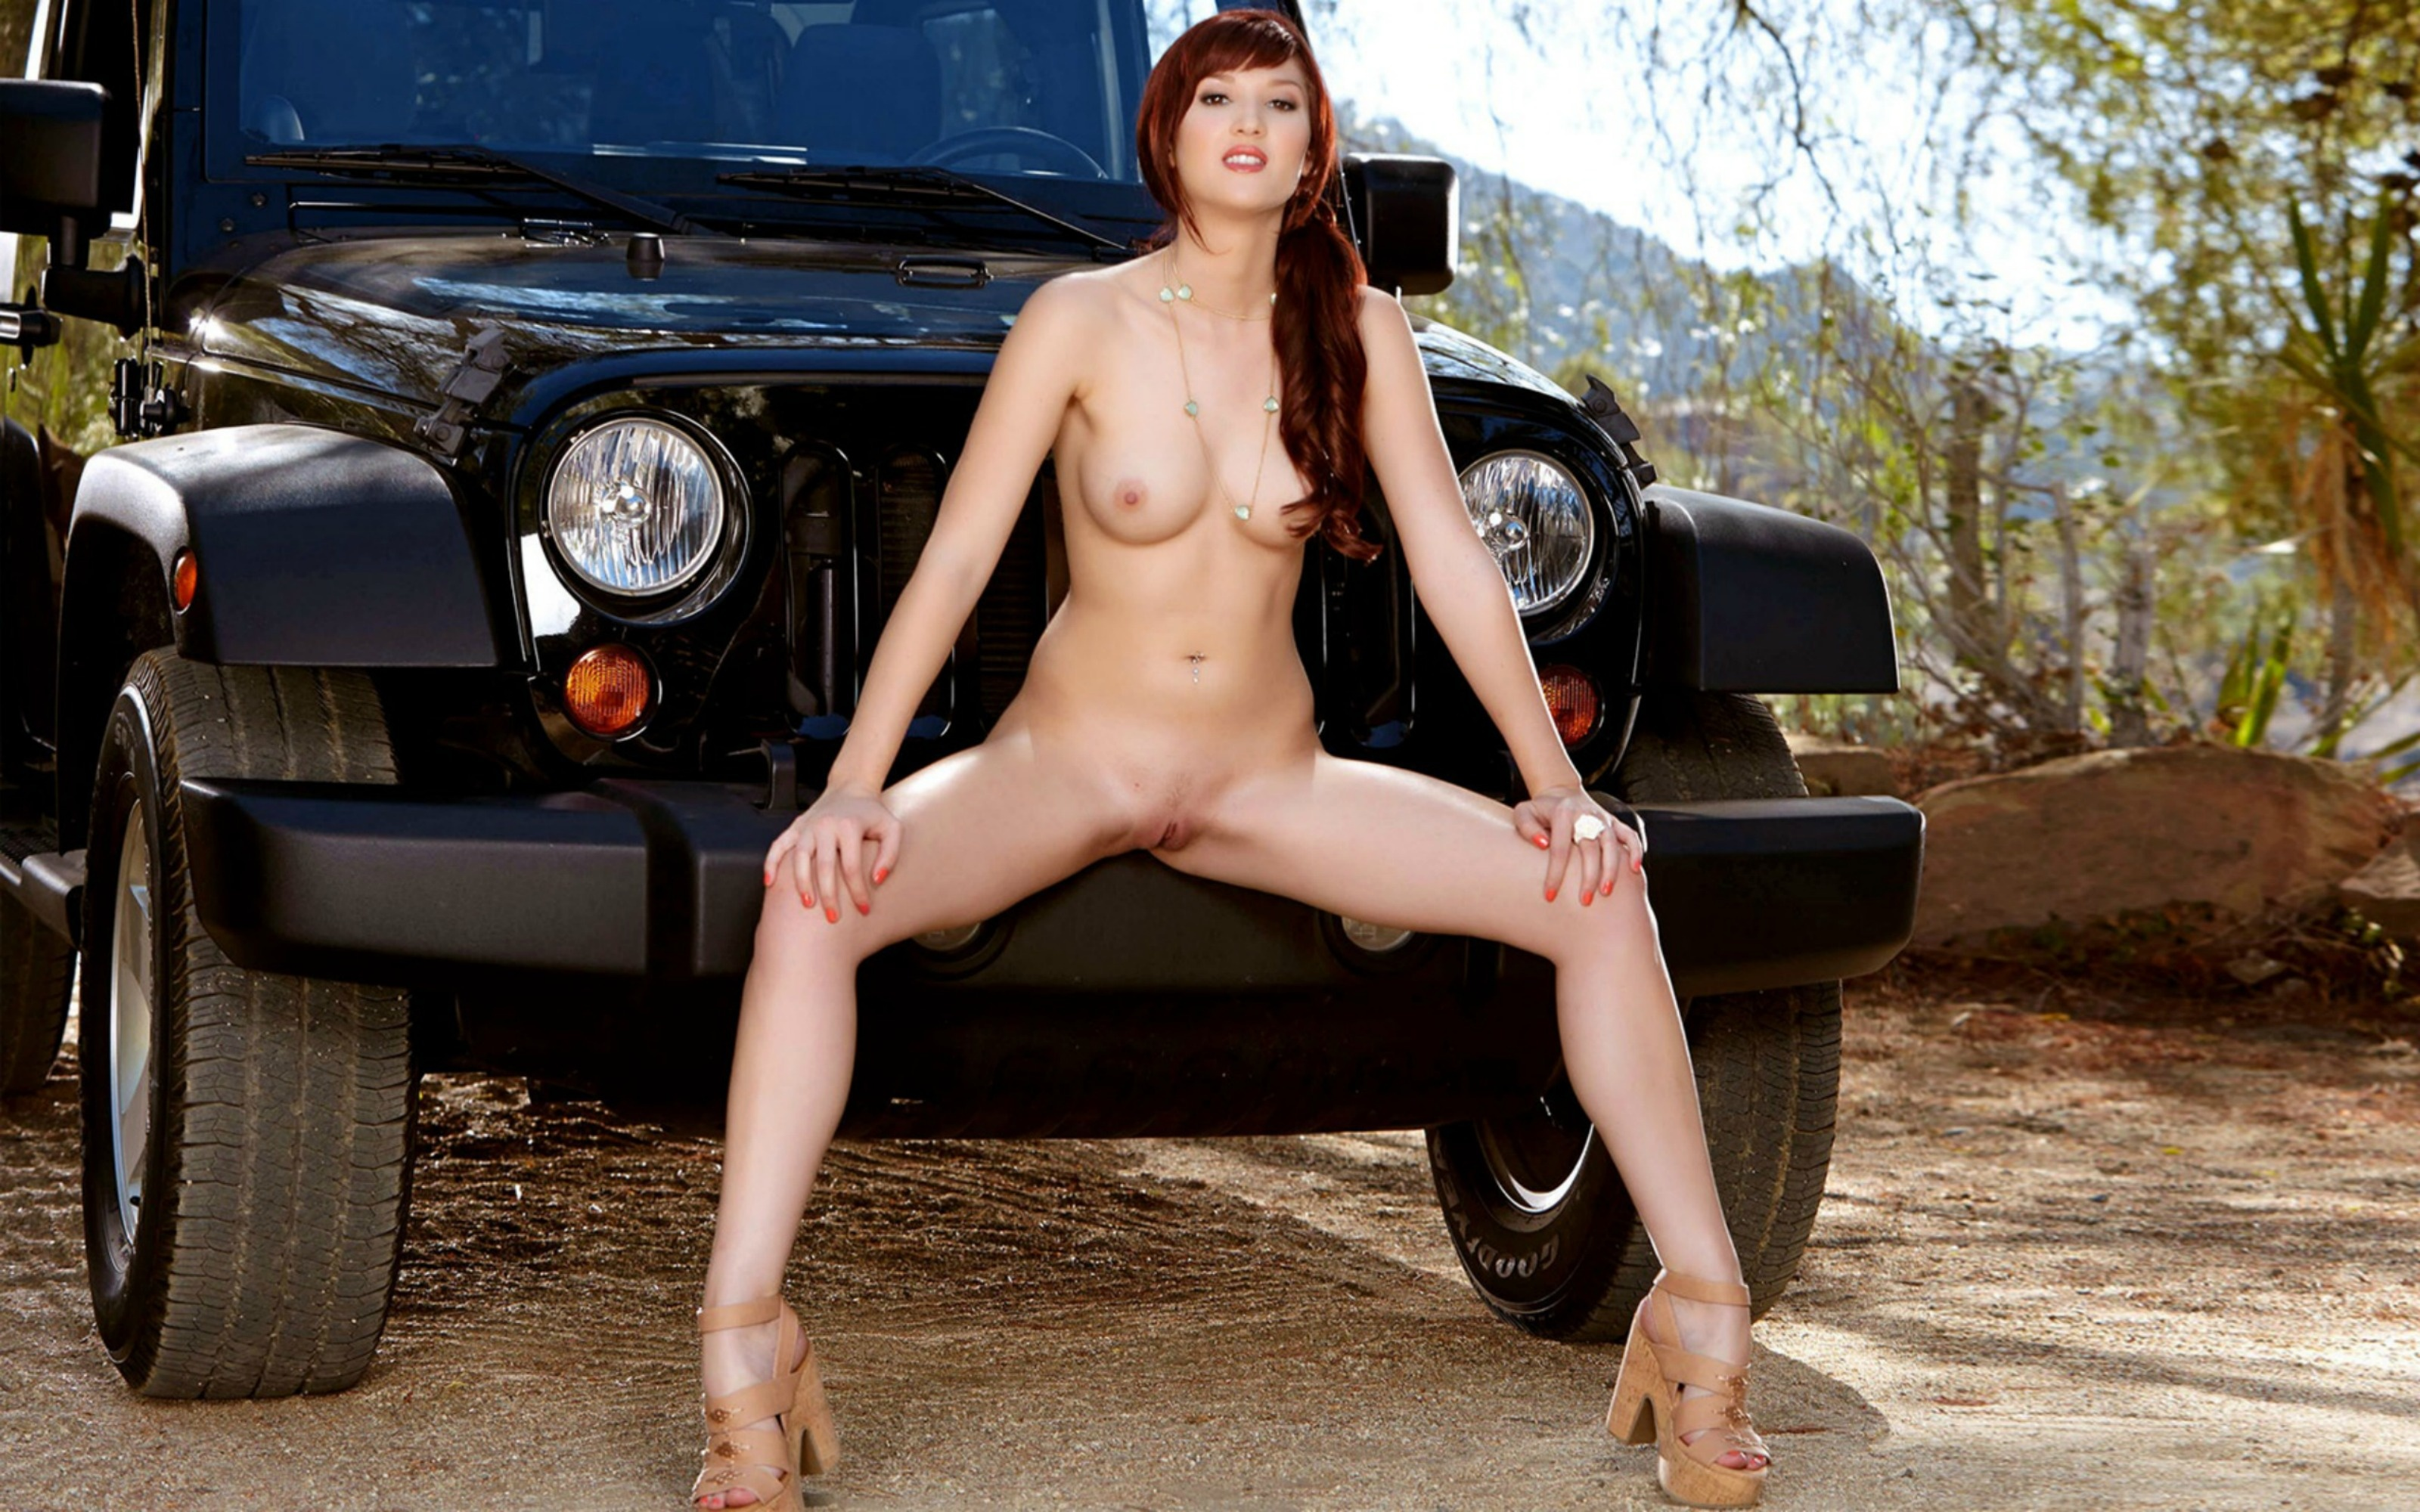 Valuable Jeeps and nude babes have